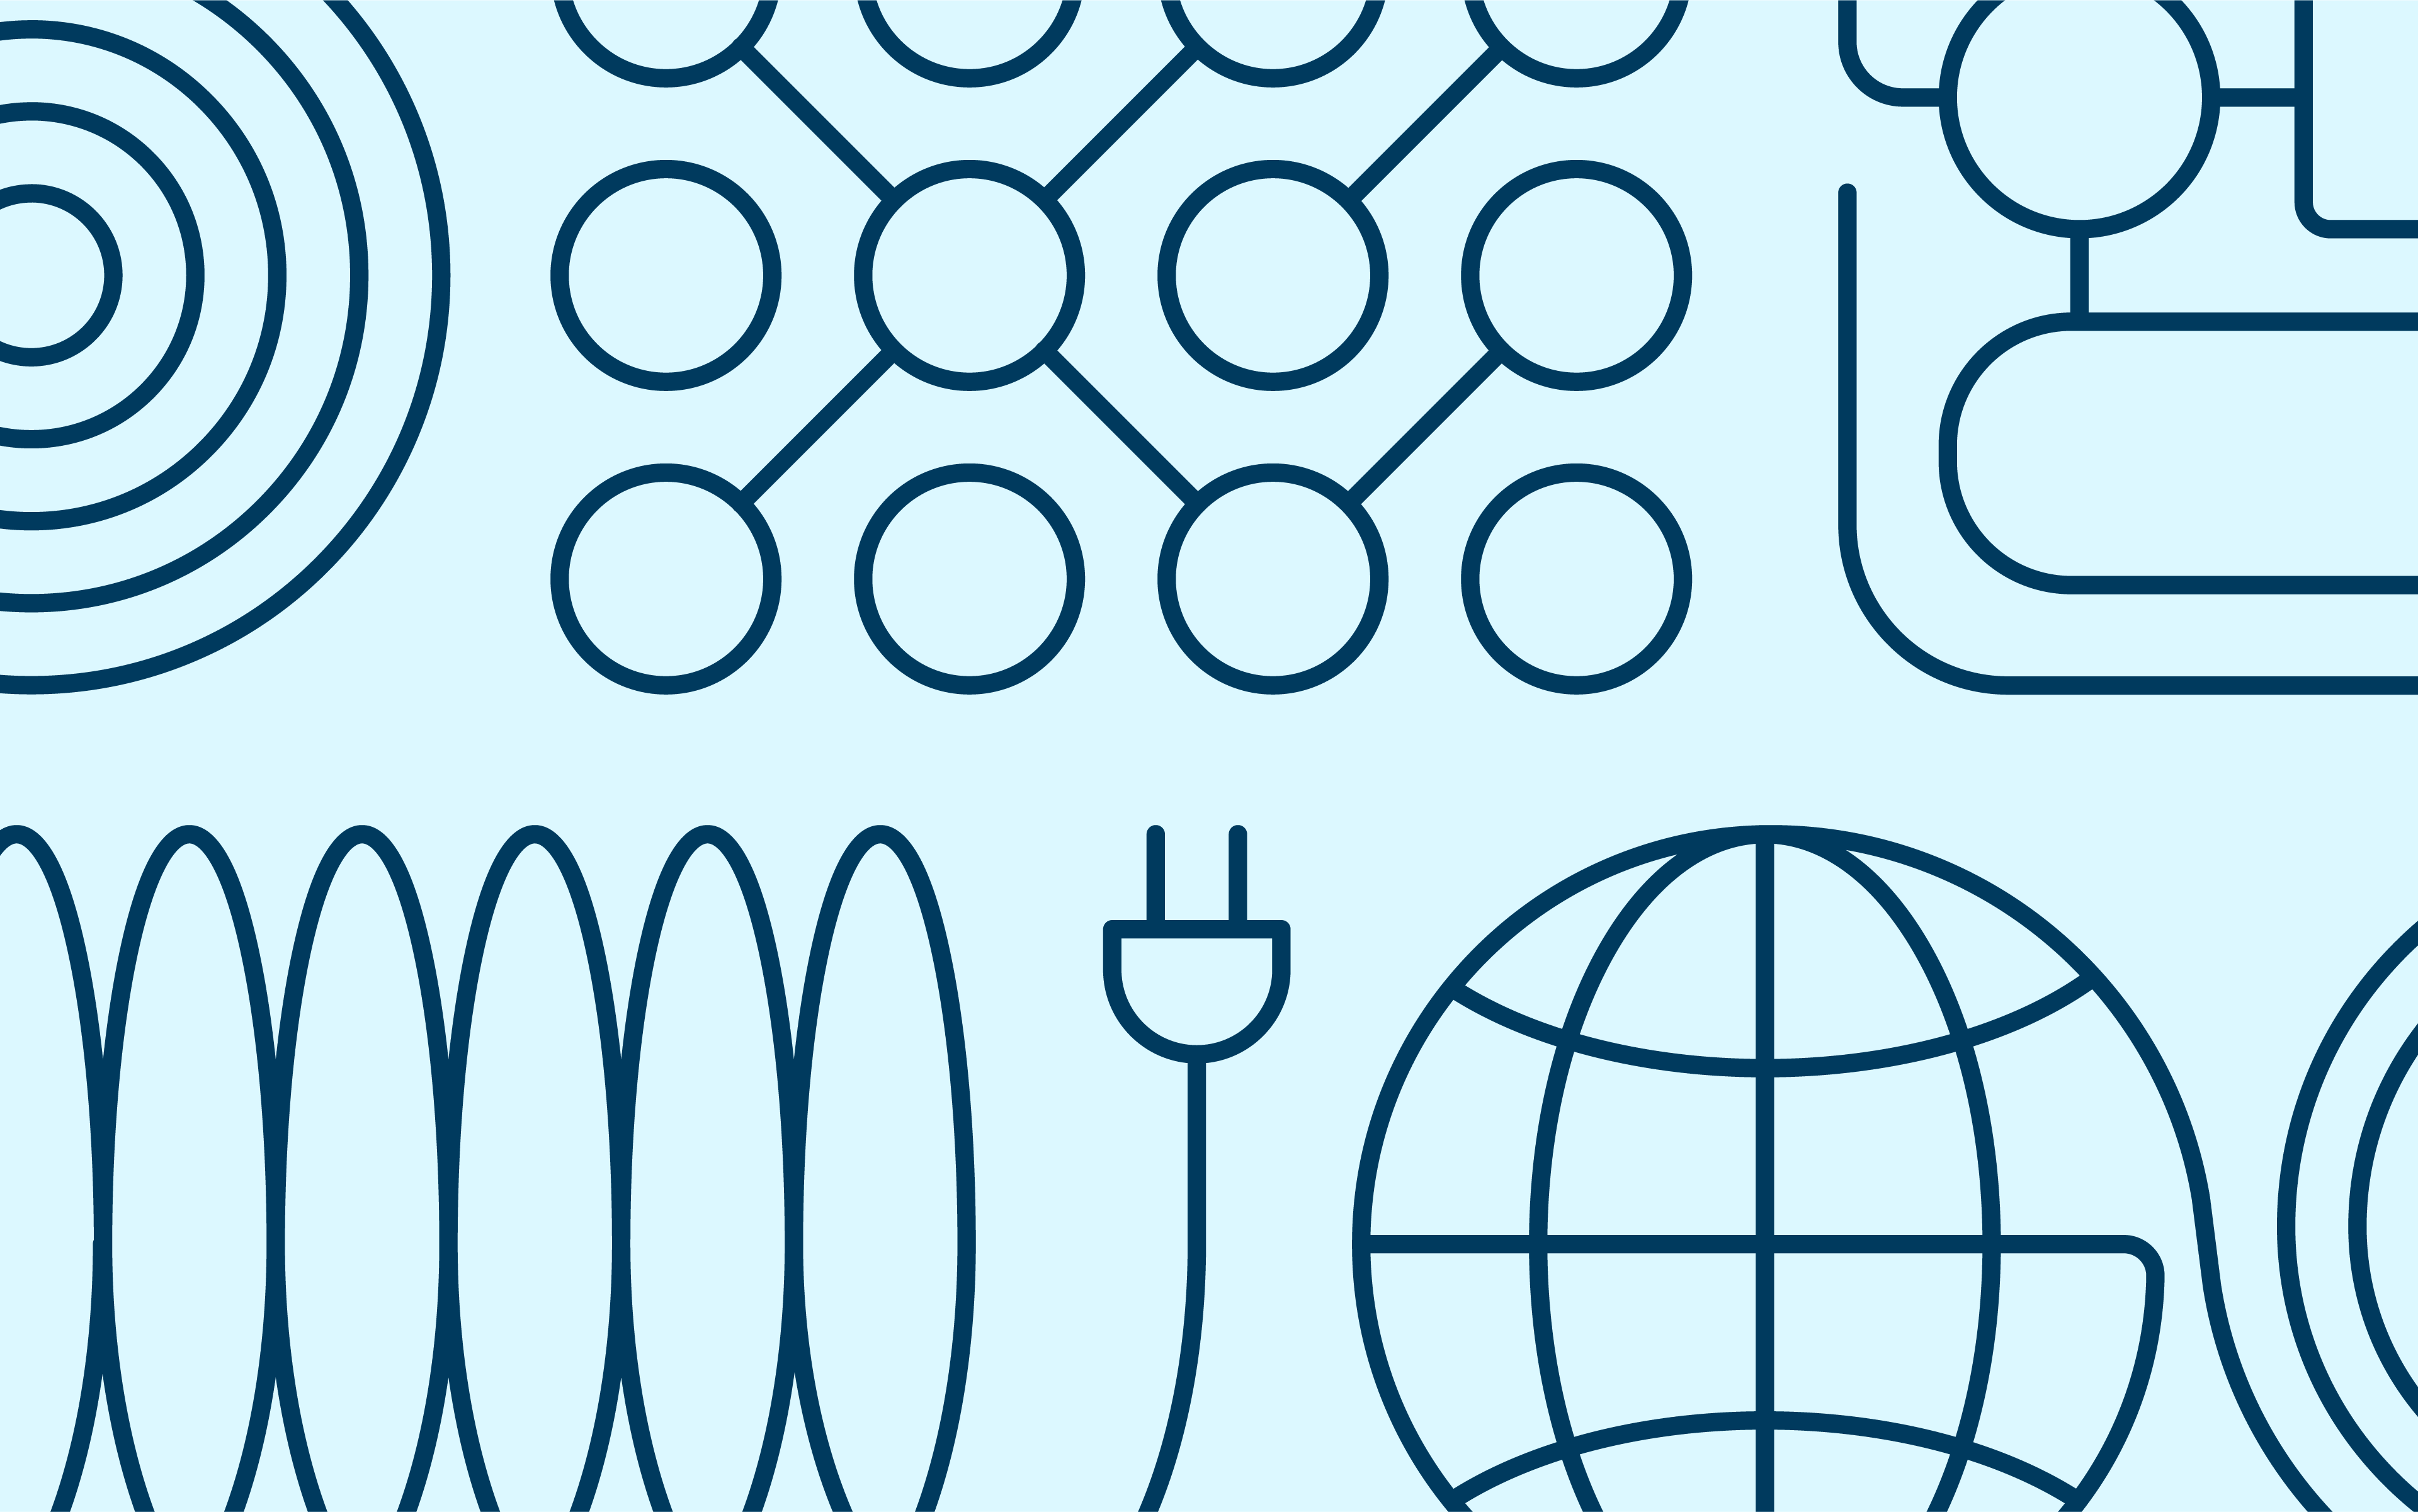 Åmela tunnel